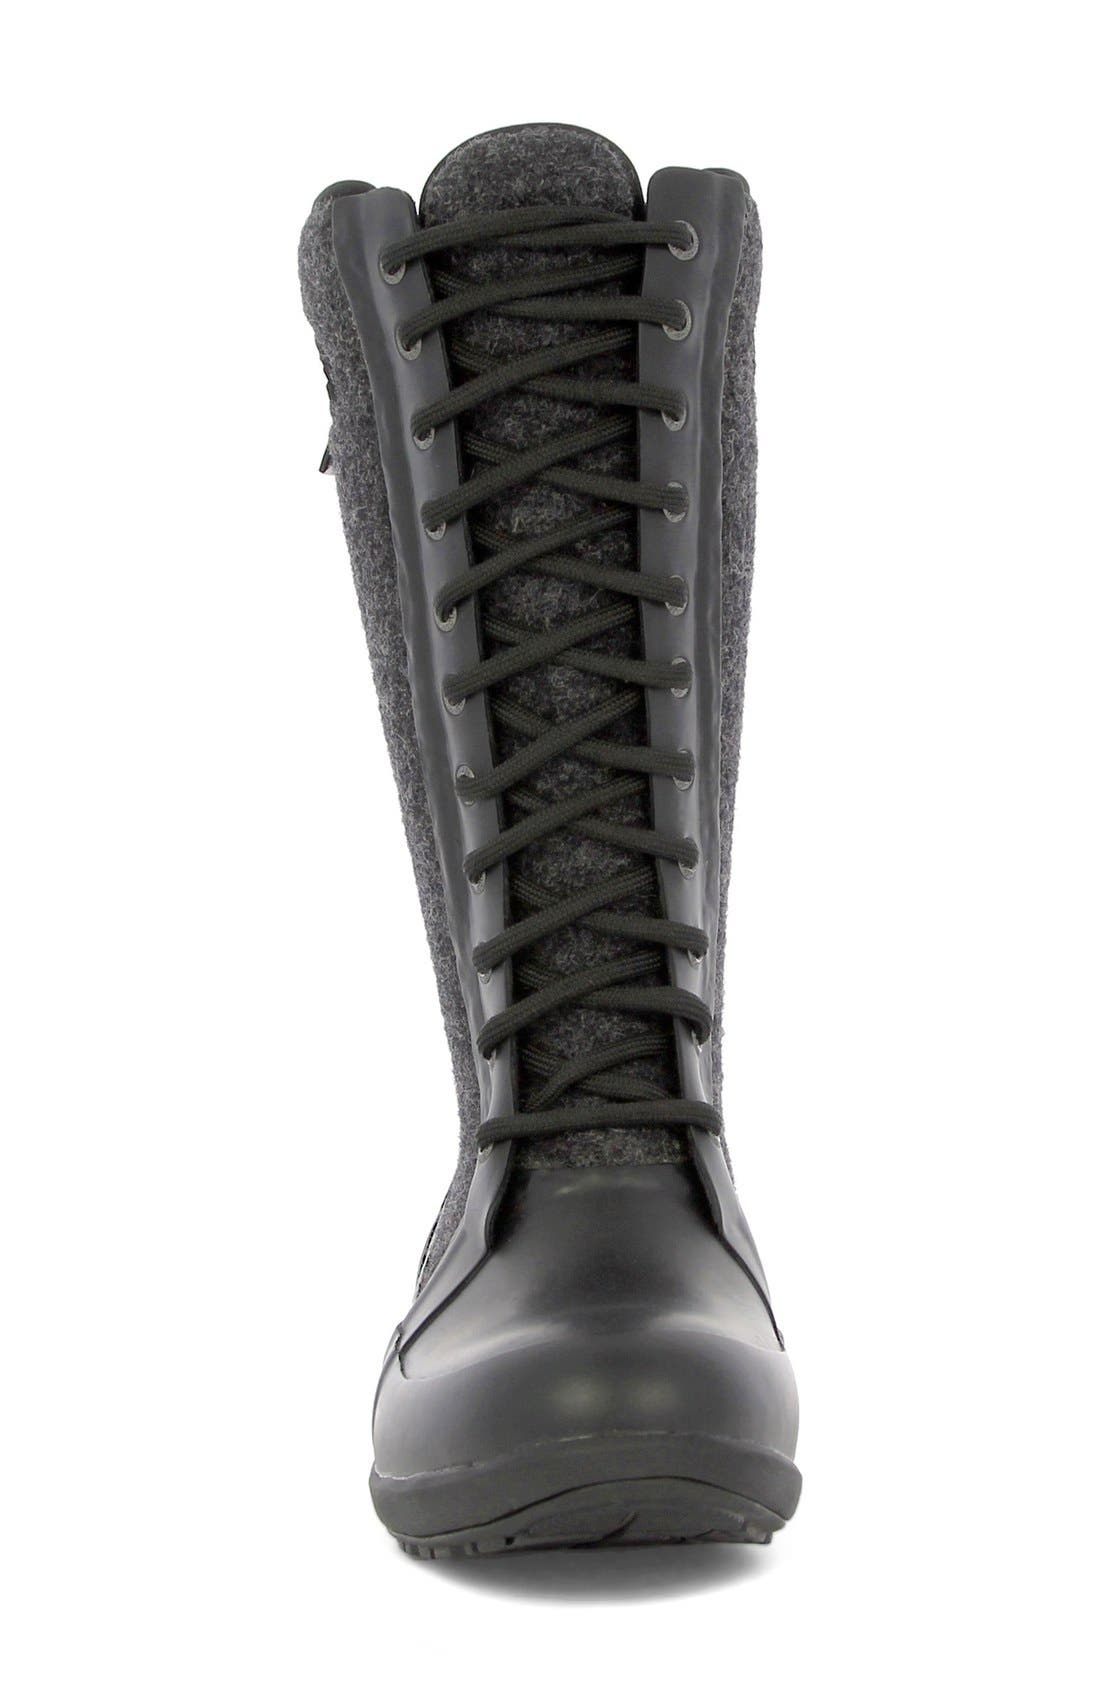 'Cami' Knee High Waterproof Boot,                             Alternate thumbnail 3, color,                             Black Multi Wool